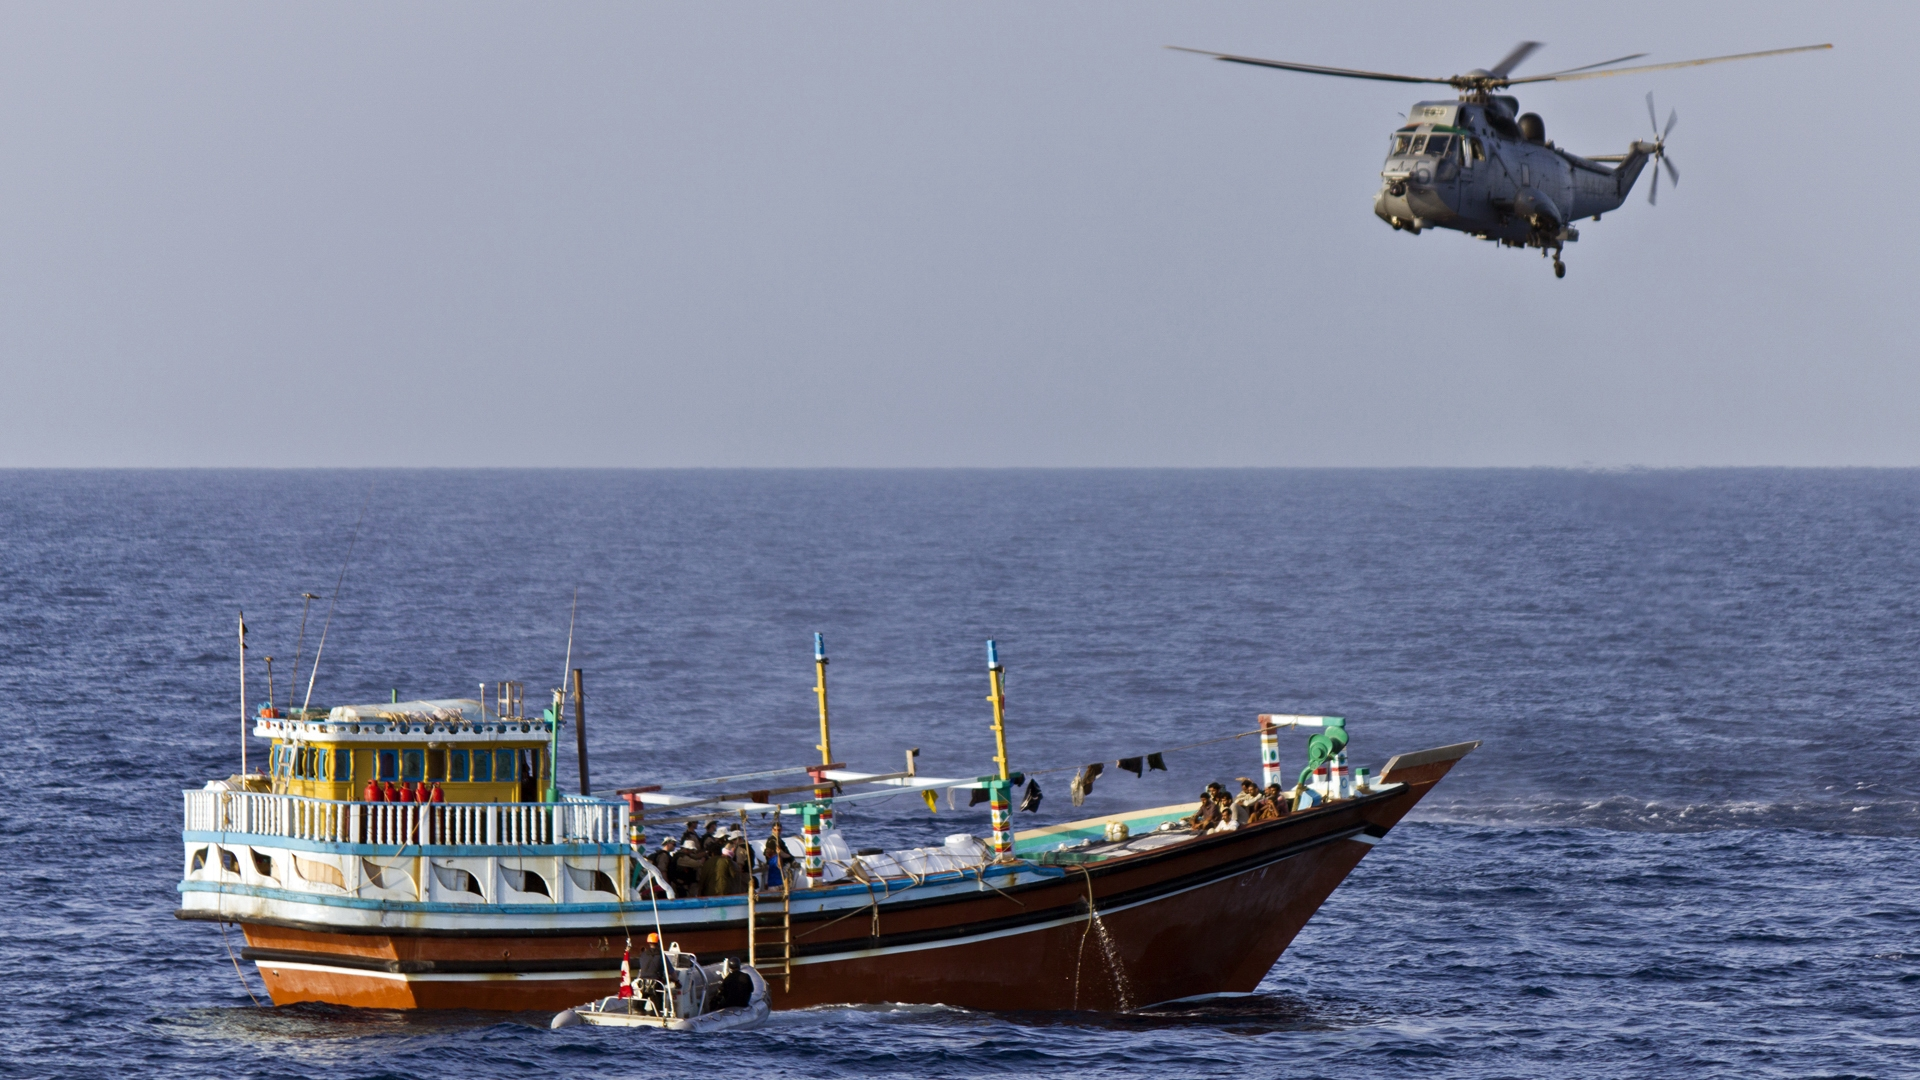 A Sea King provides cover as a boarding party from HMCS Charlottetown searches a dhow in the Gulf of Aden during Operation Artemis on May 5, 2012. PHOTO: Lieutenant (Navy) Darren Puttock, HS2012-0071-562